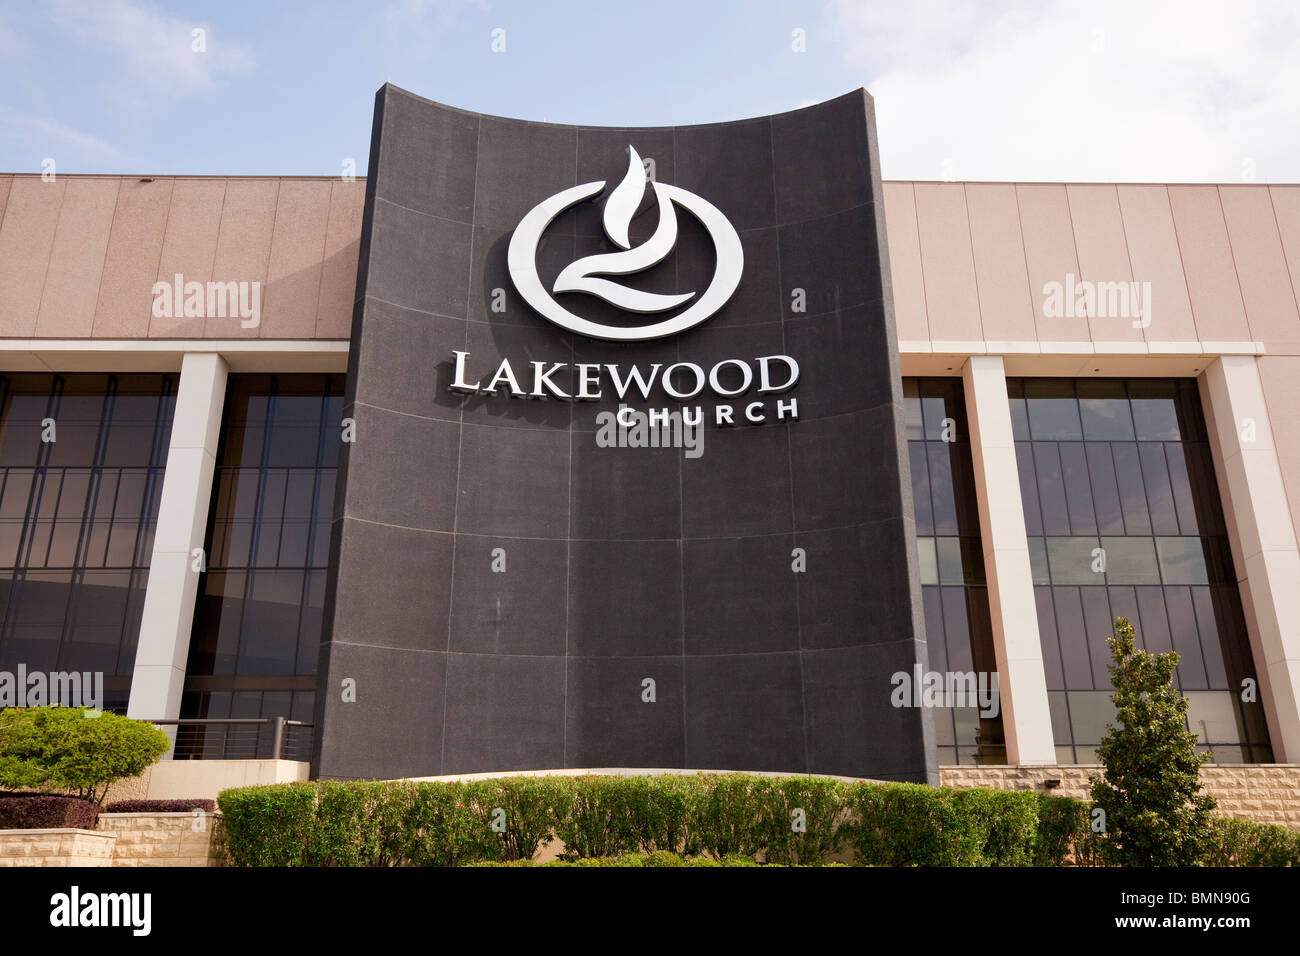 The exterior building of the Joel Osteen Ministries mega church, Lakewood Church in Houston, Texas, USA. - Stock Image